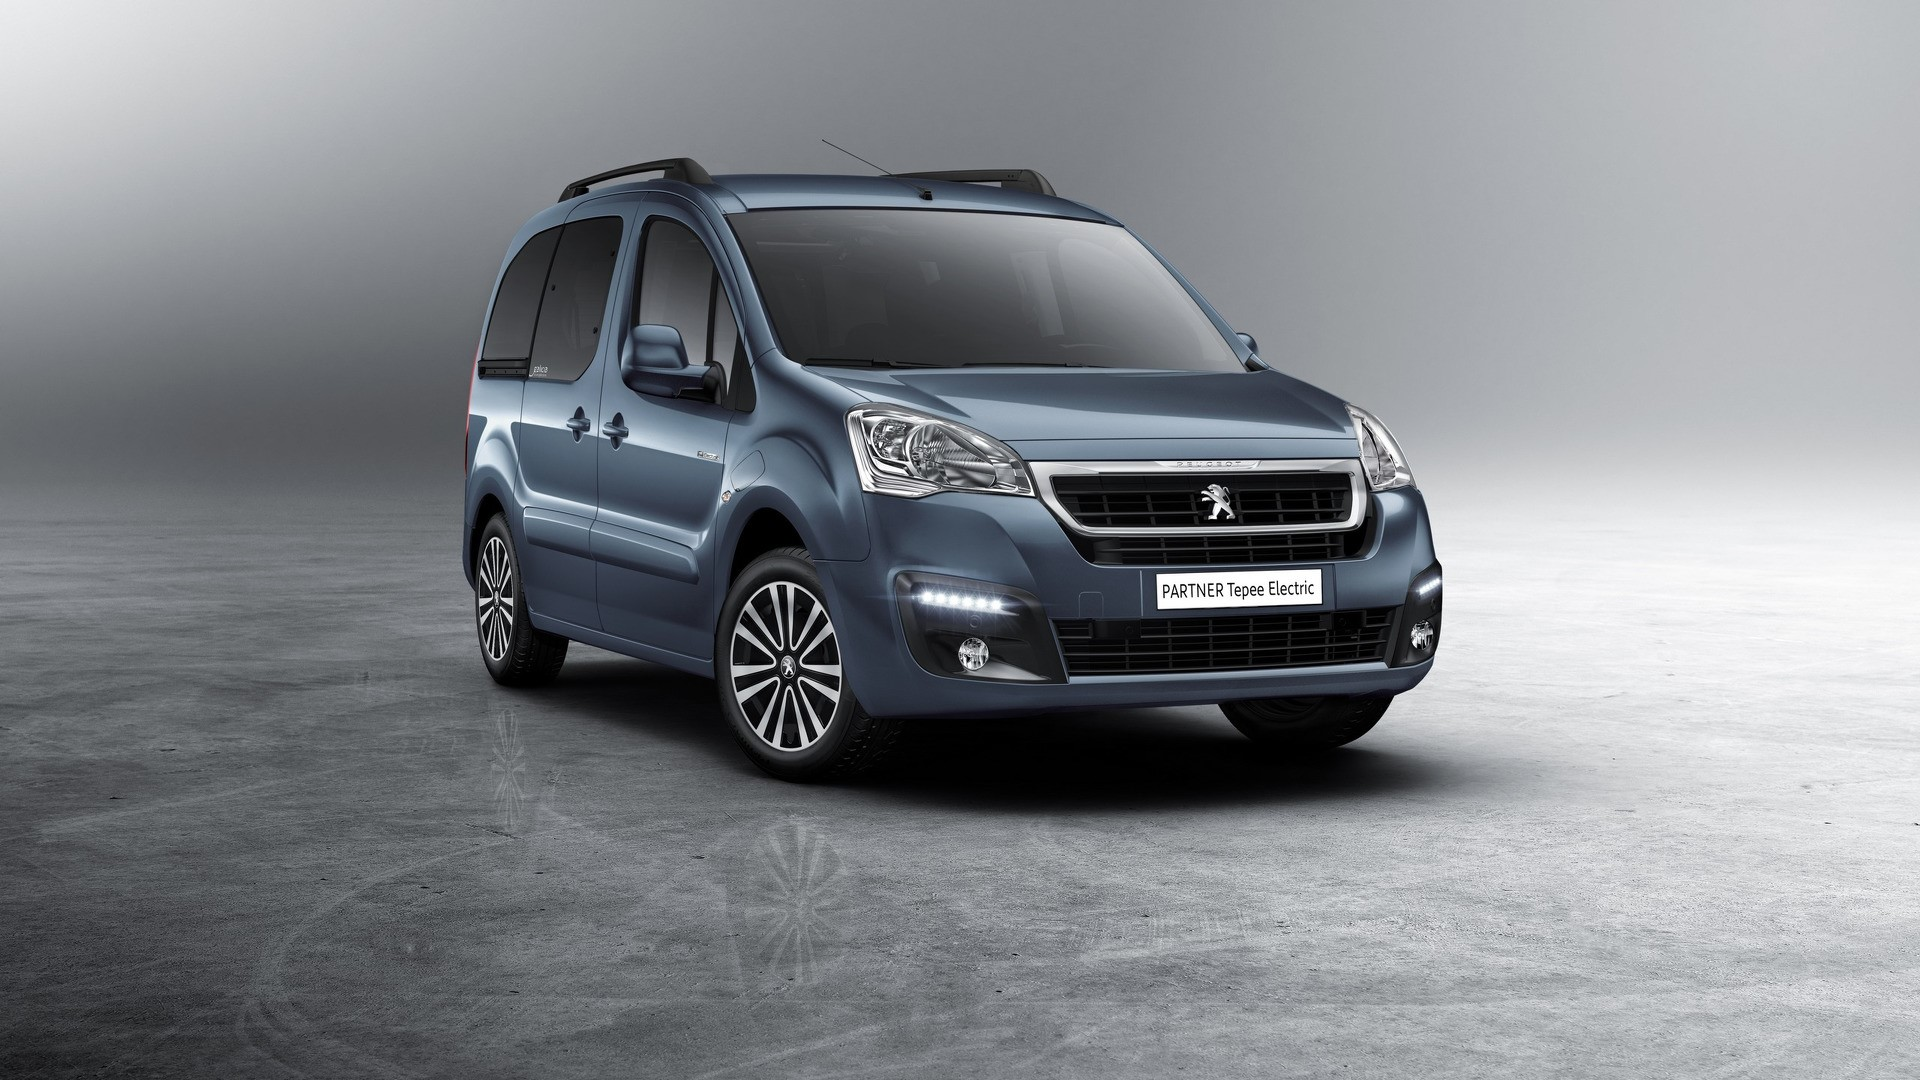 Peugeot Partner Tepee Electric (2)